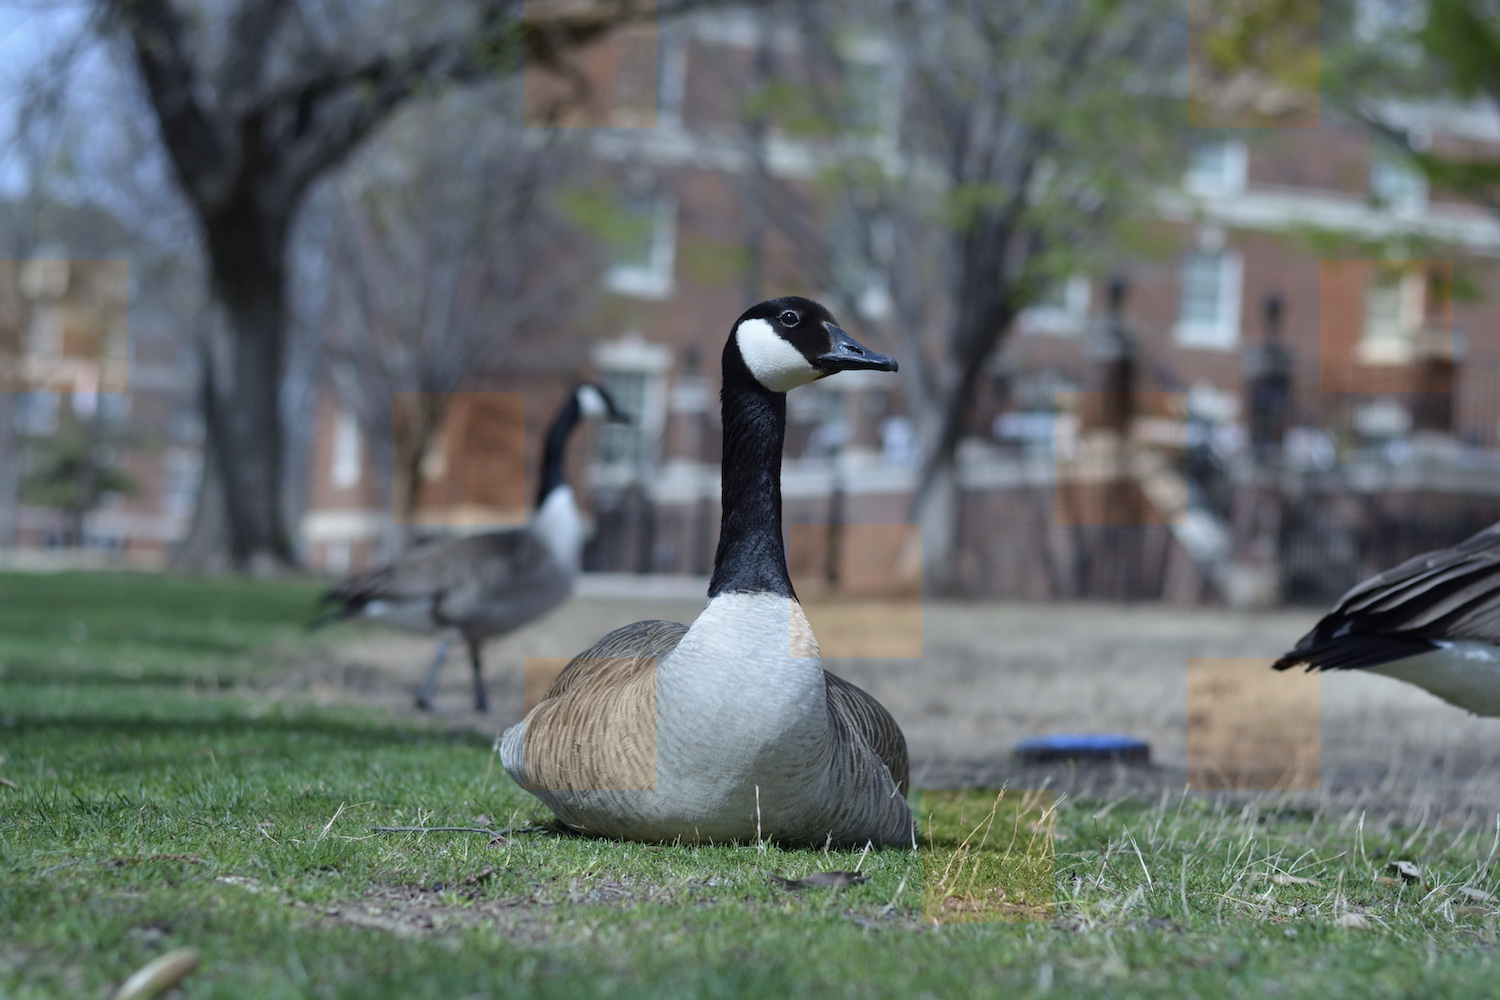 goose on the grass with checkerboard pattern